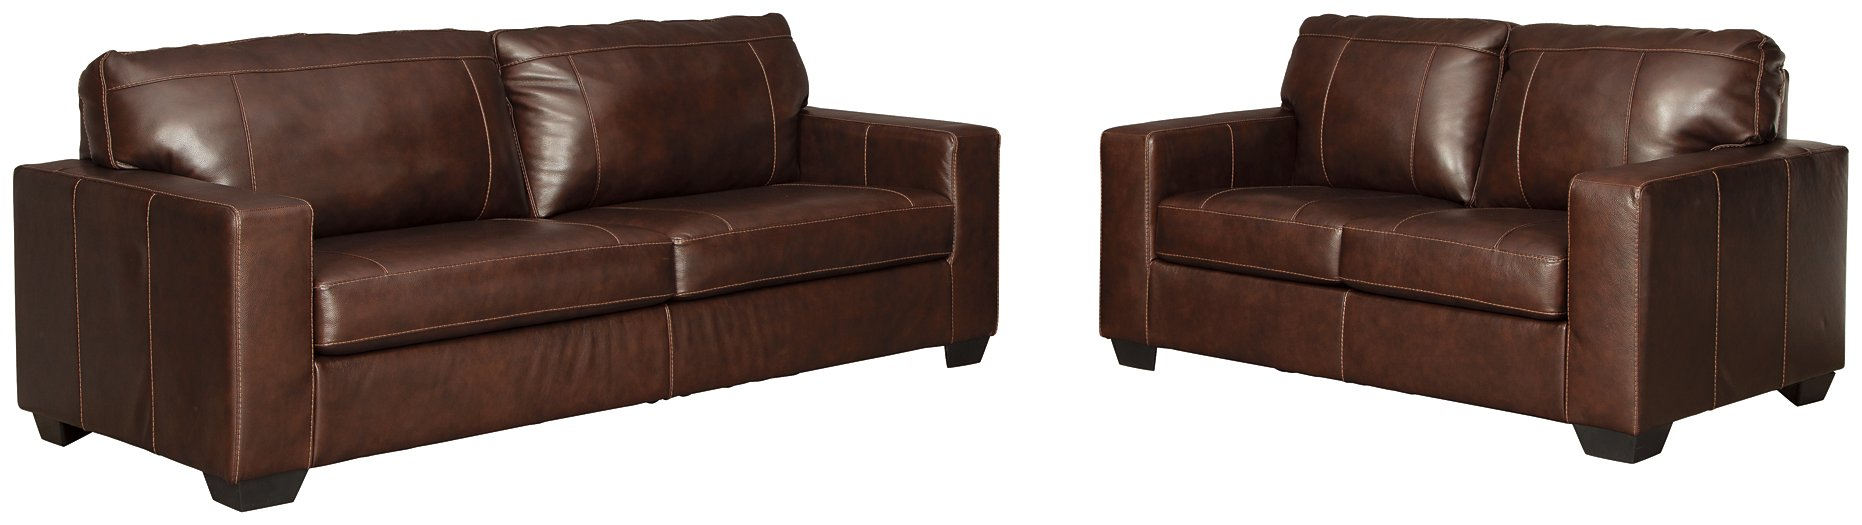 Morelos Signature Design 2-Piece Living Room Set image